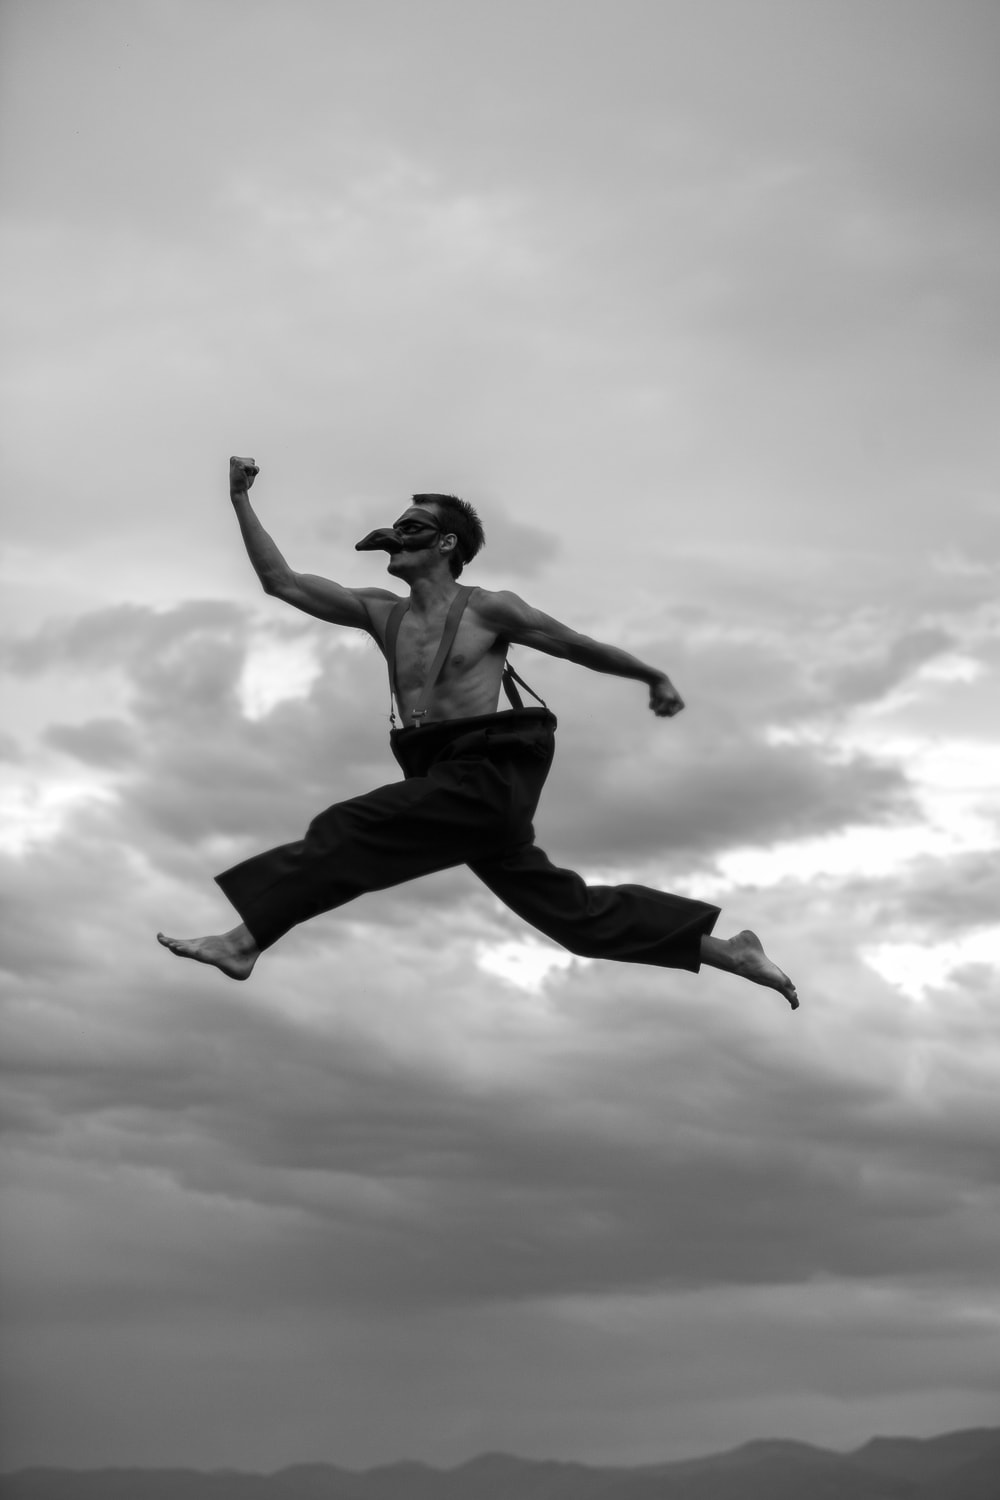 Black & White Commercial Photography of Man in Air Taken By the Professional Commercial Photographers at Harper Point.